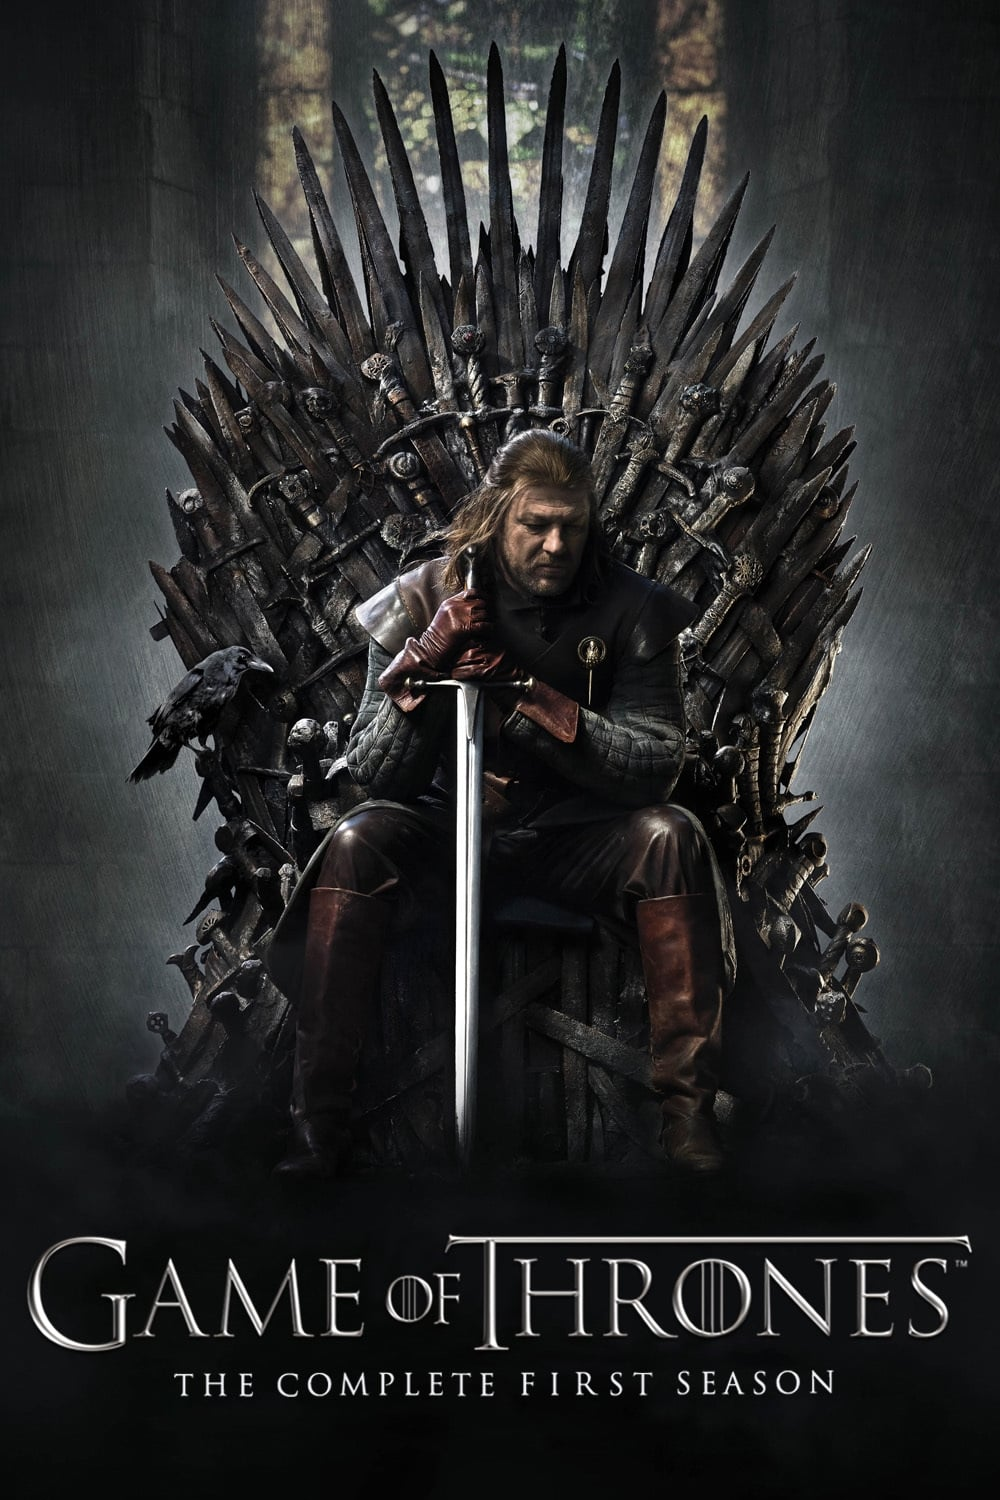 http://ourhometorontoblog.com/game-of-thrones-1a-temporada-2011-bdrip-bluray-720p-torrent-dual-audio/